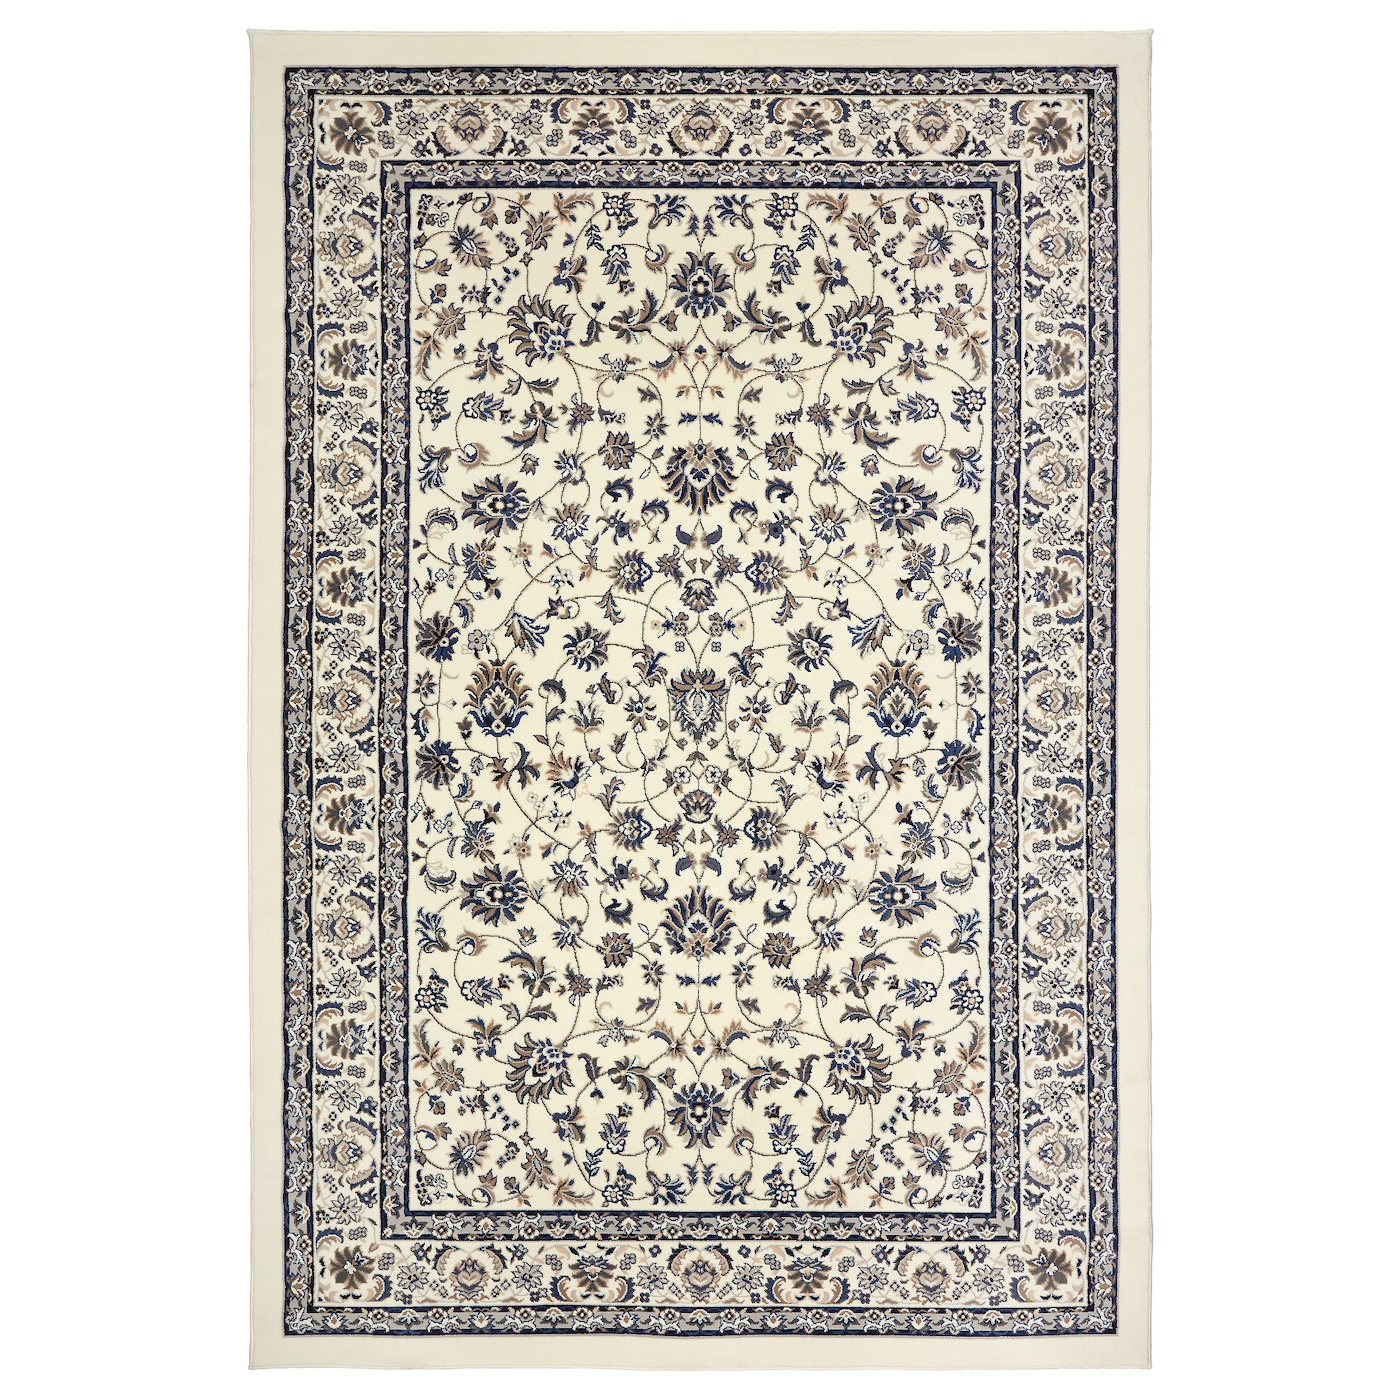 Vall 214 By Rug Low Pile Beige Blue 200 X 300 Cm Ikea